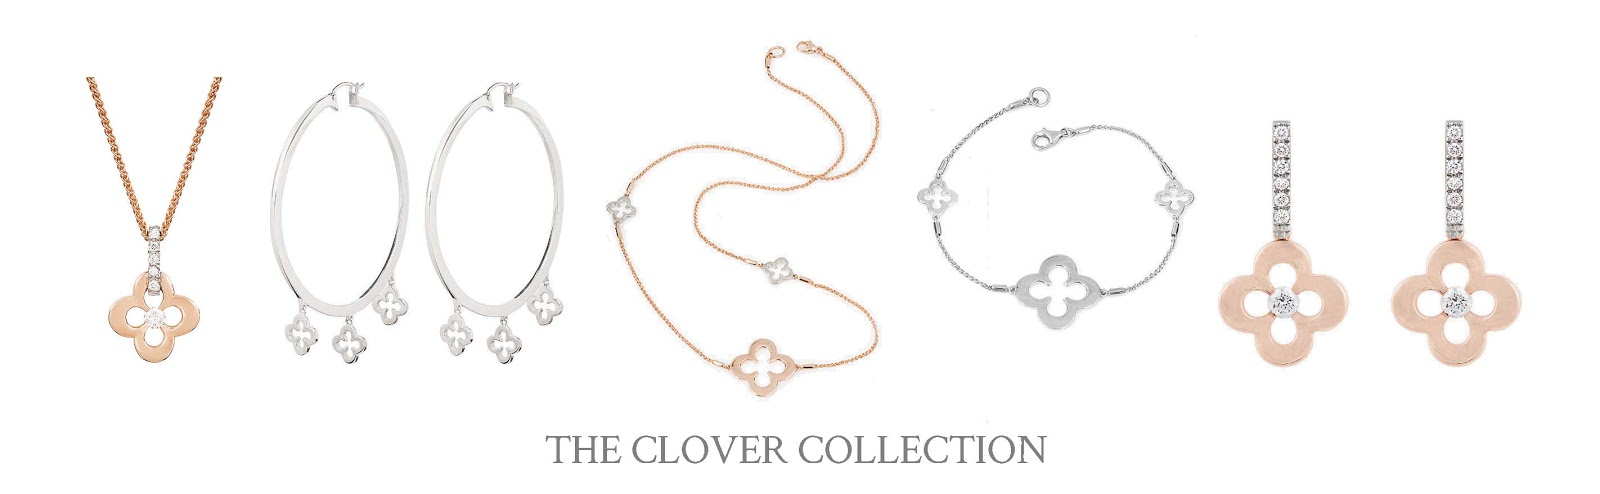 ad837a201 This stunning collection - including pendants, necklaces, earrings, and  bracelets - is made in the UK one at a time, and because of this variations  in the ...